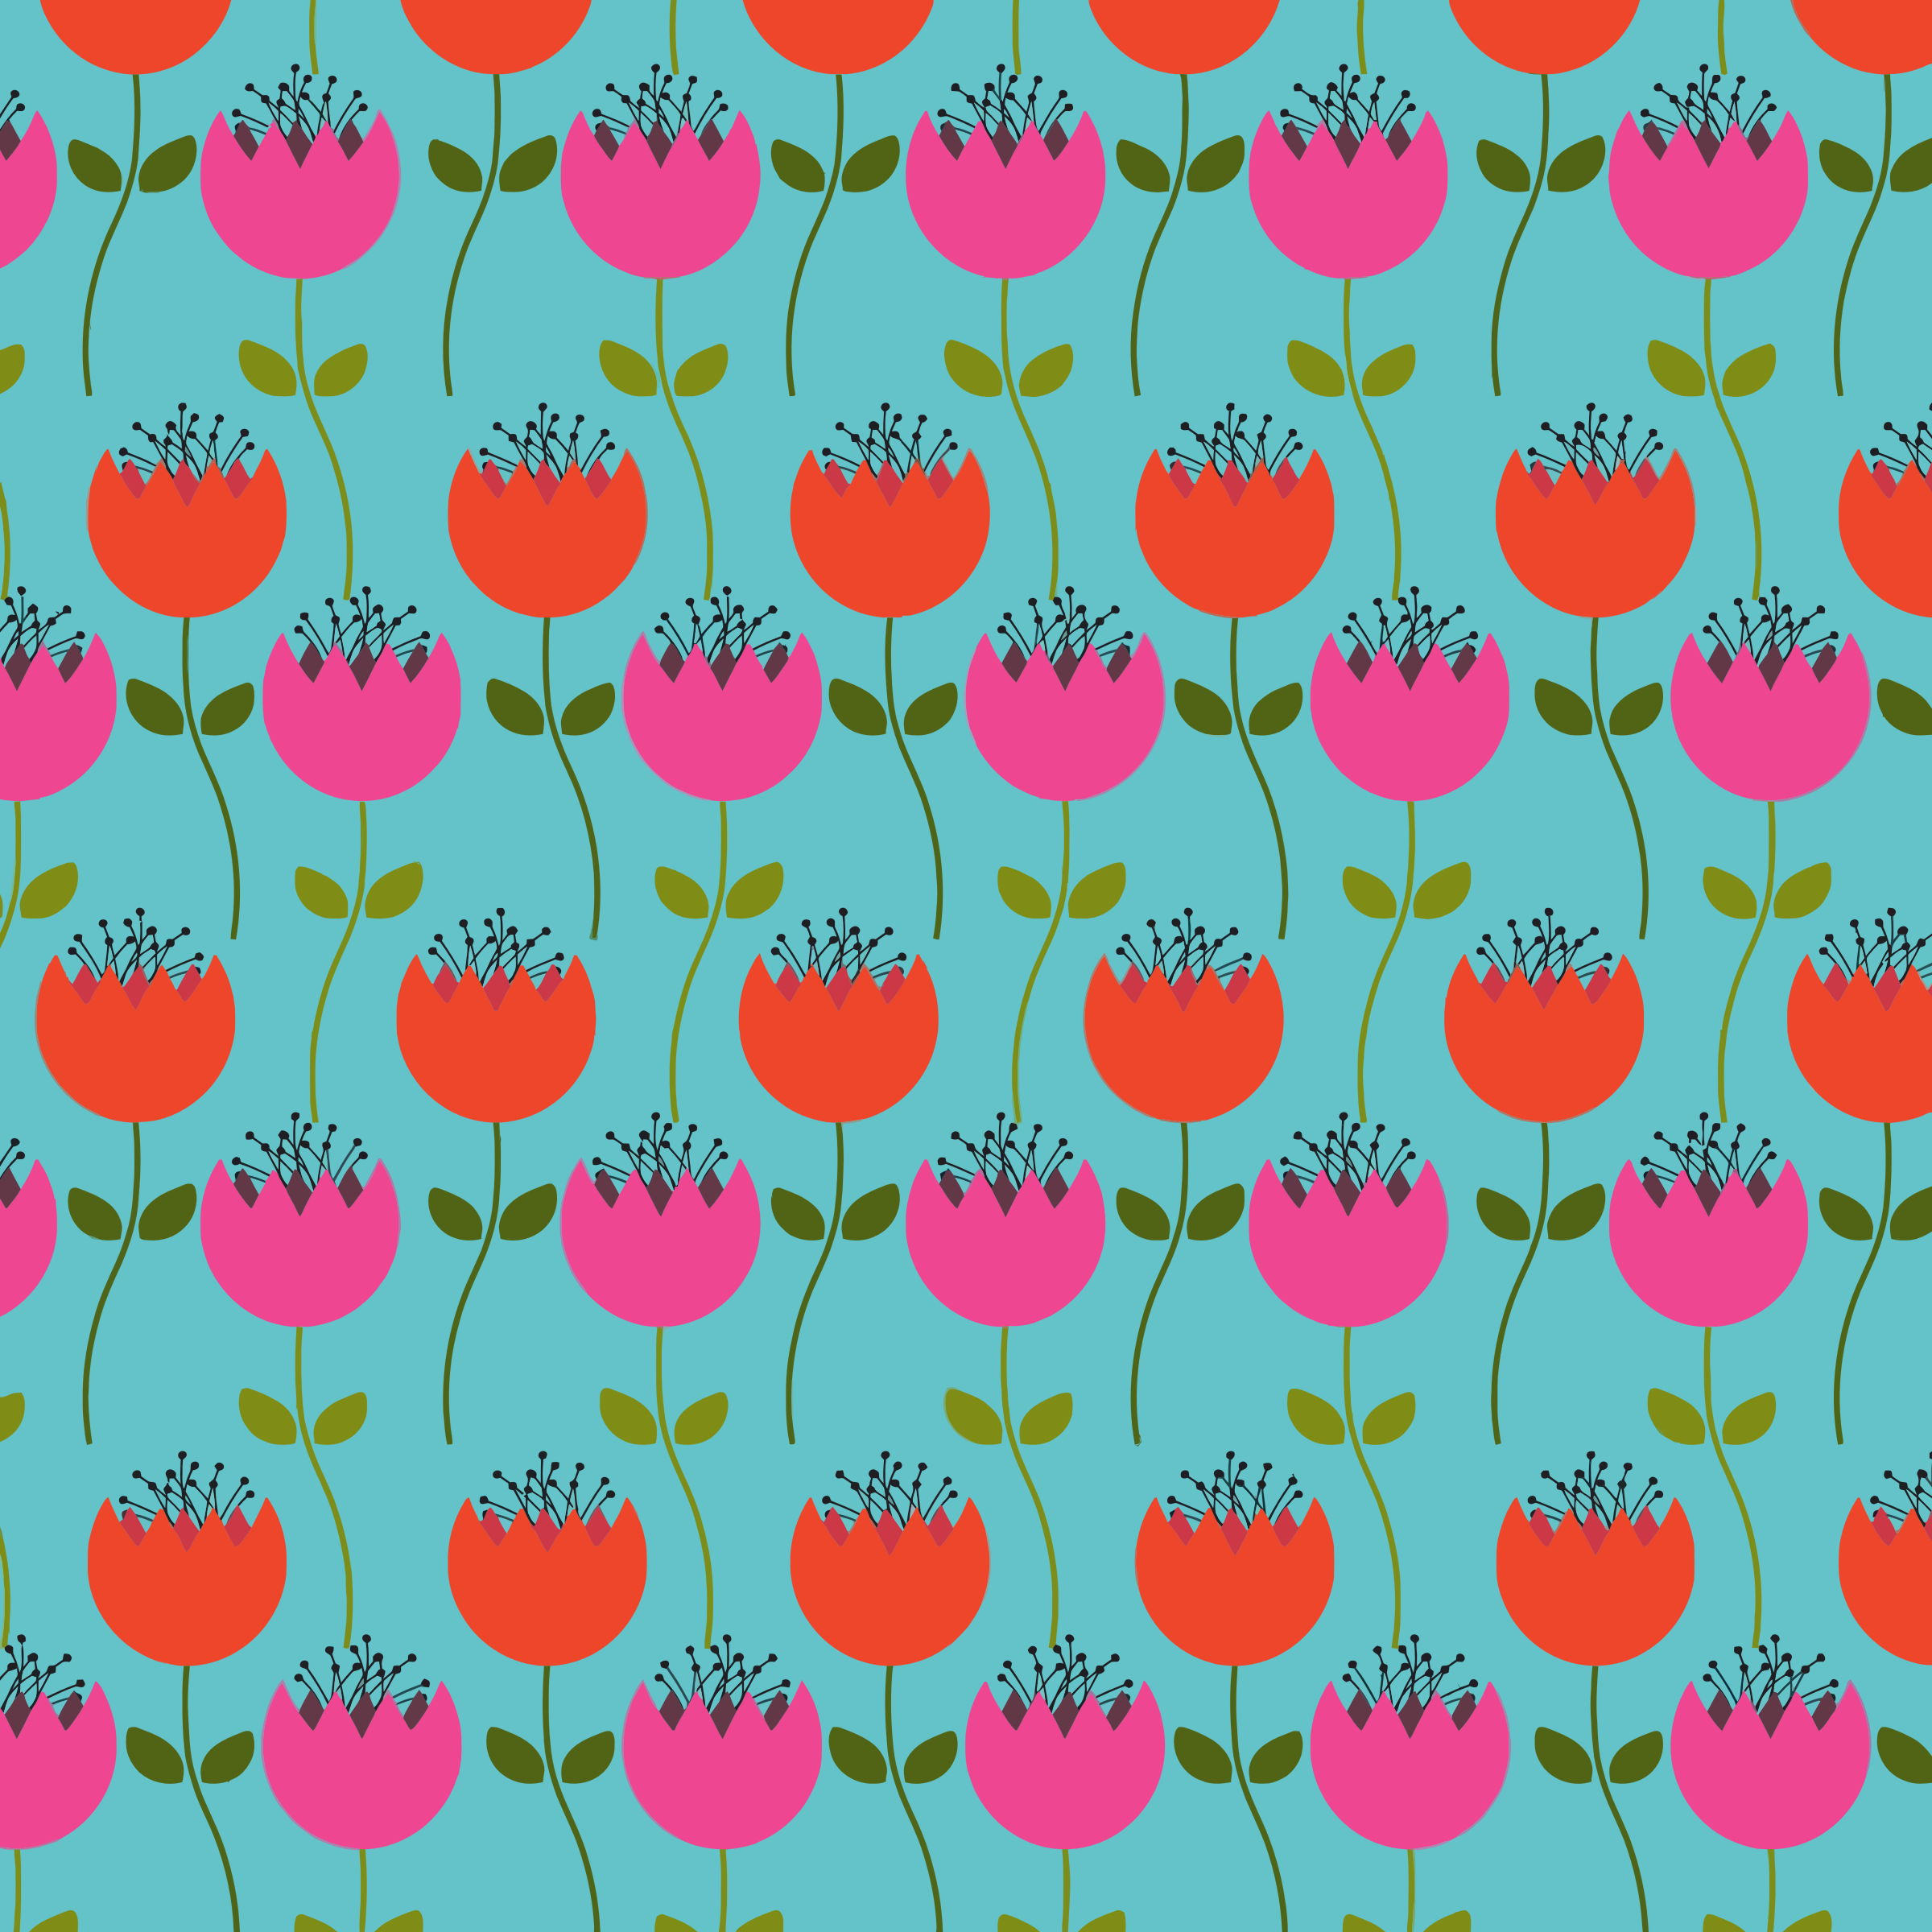 Tulips Floral Pattern by GDJ